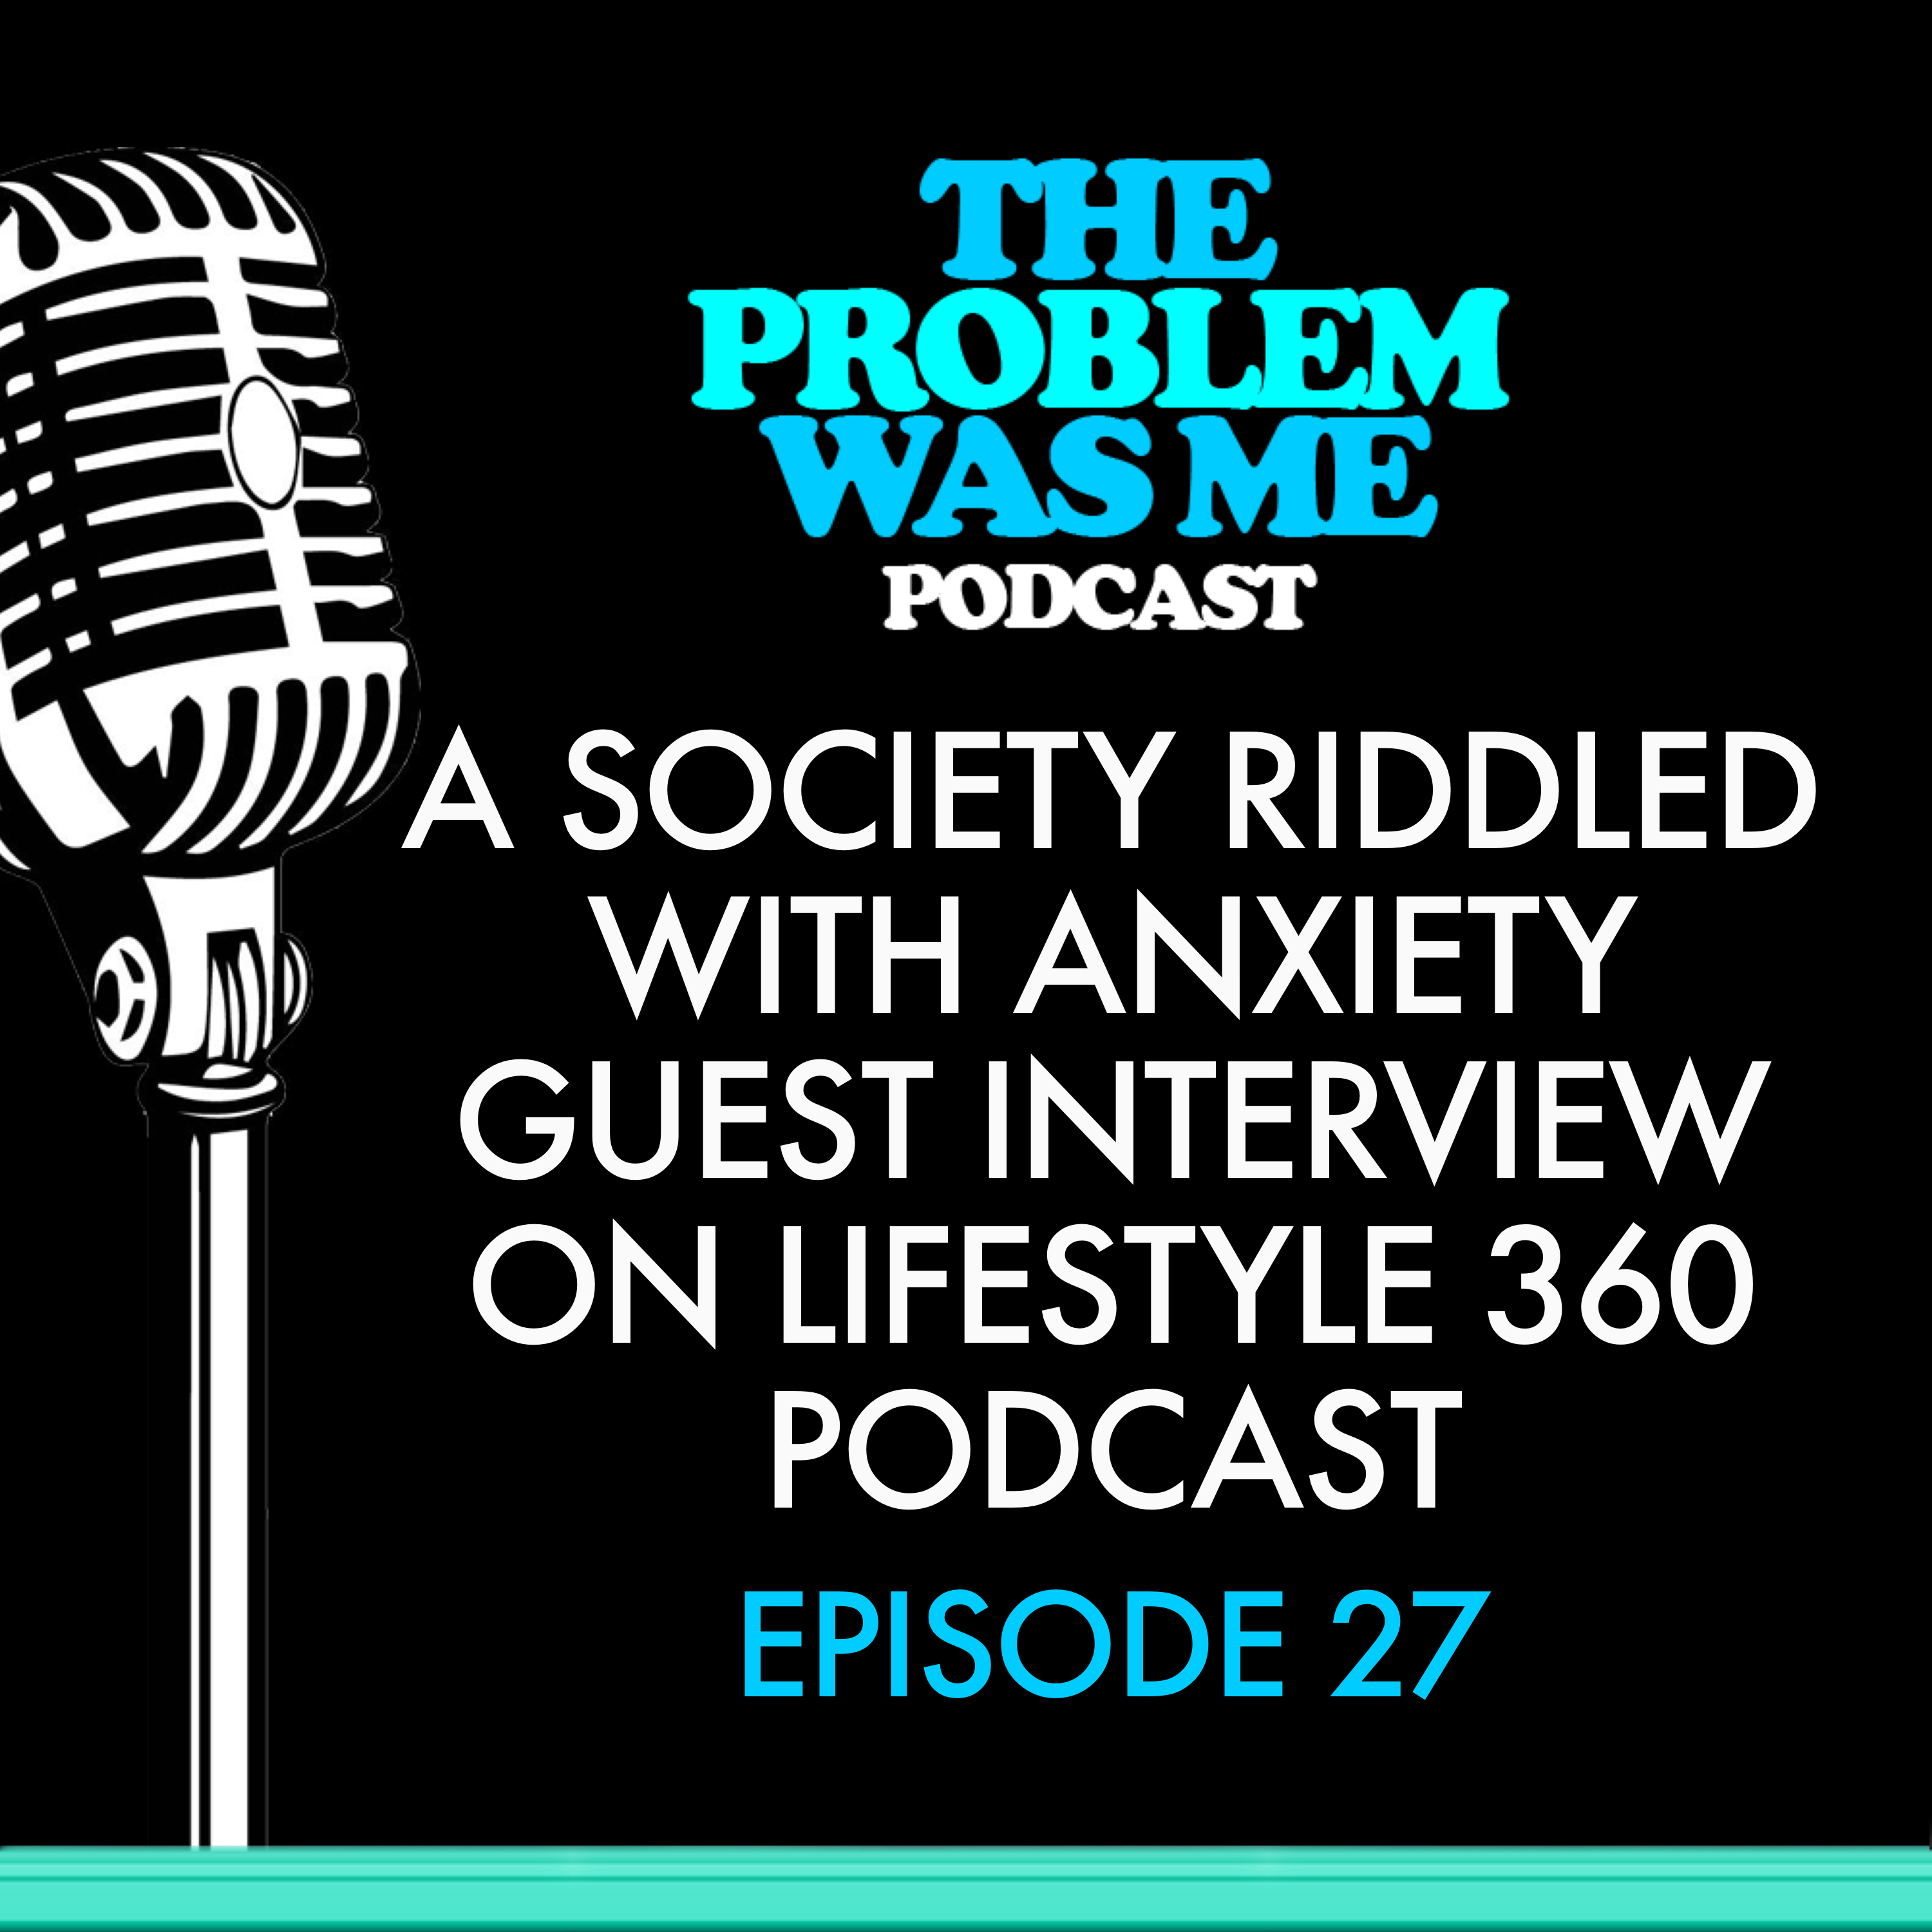 A Society Riddled With Anxiety a Guest Interview on Lifestyle 360 Podcast